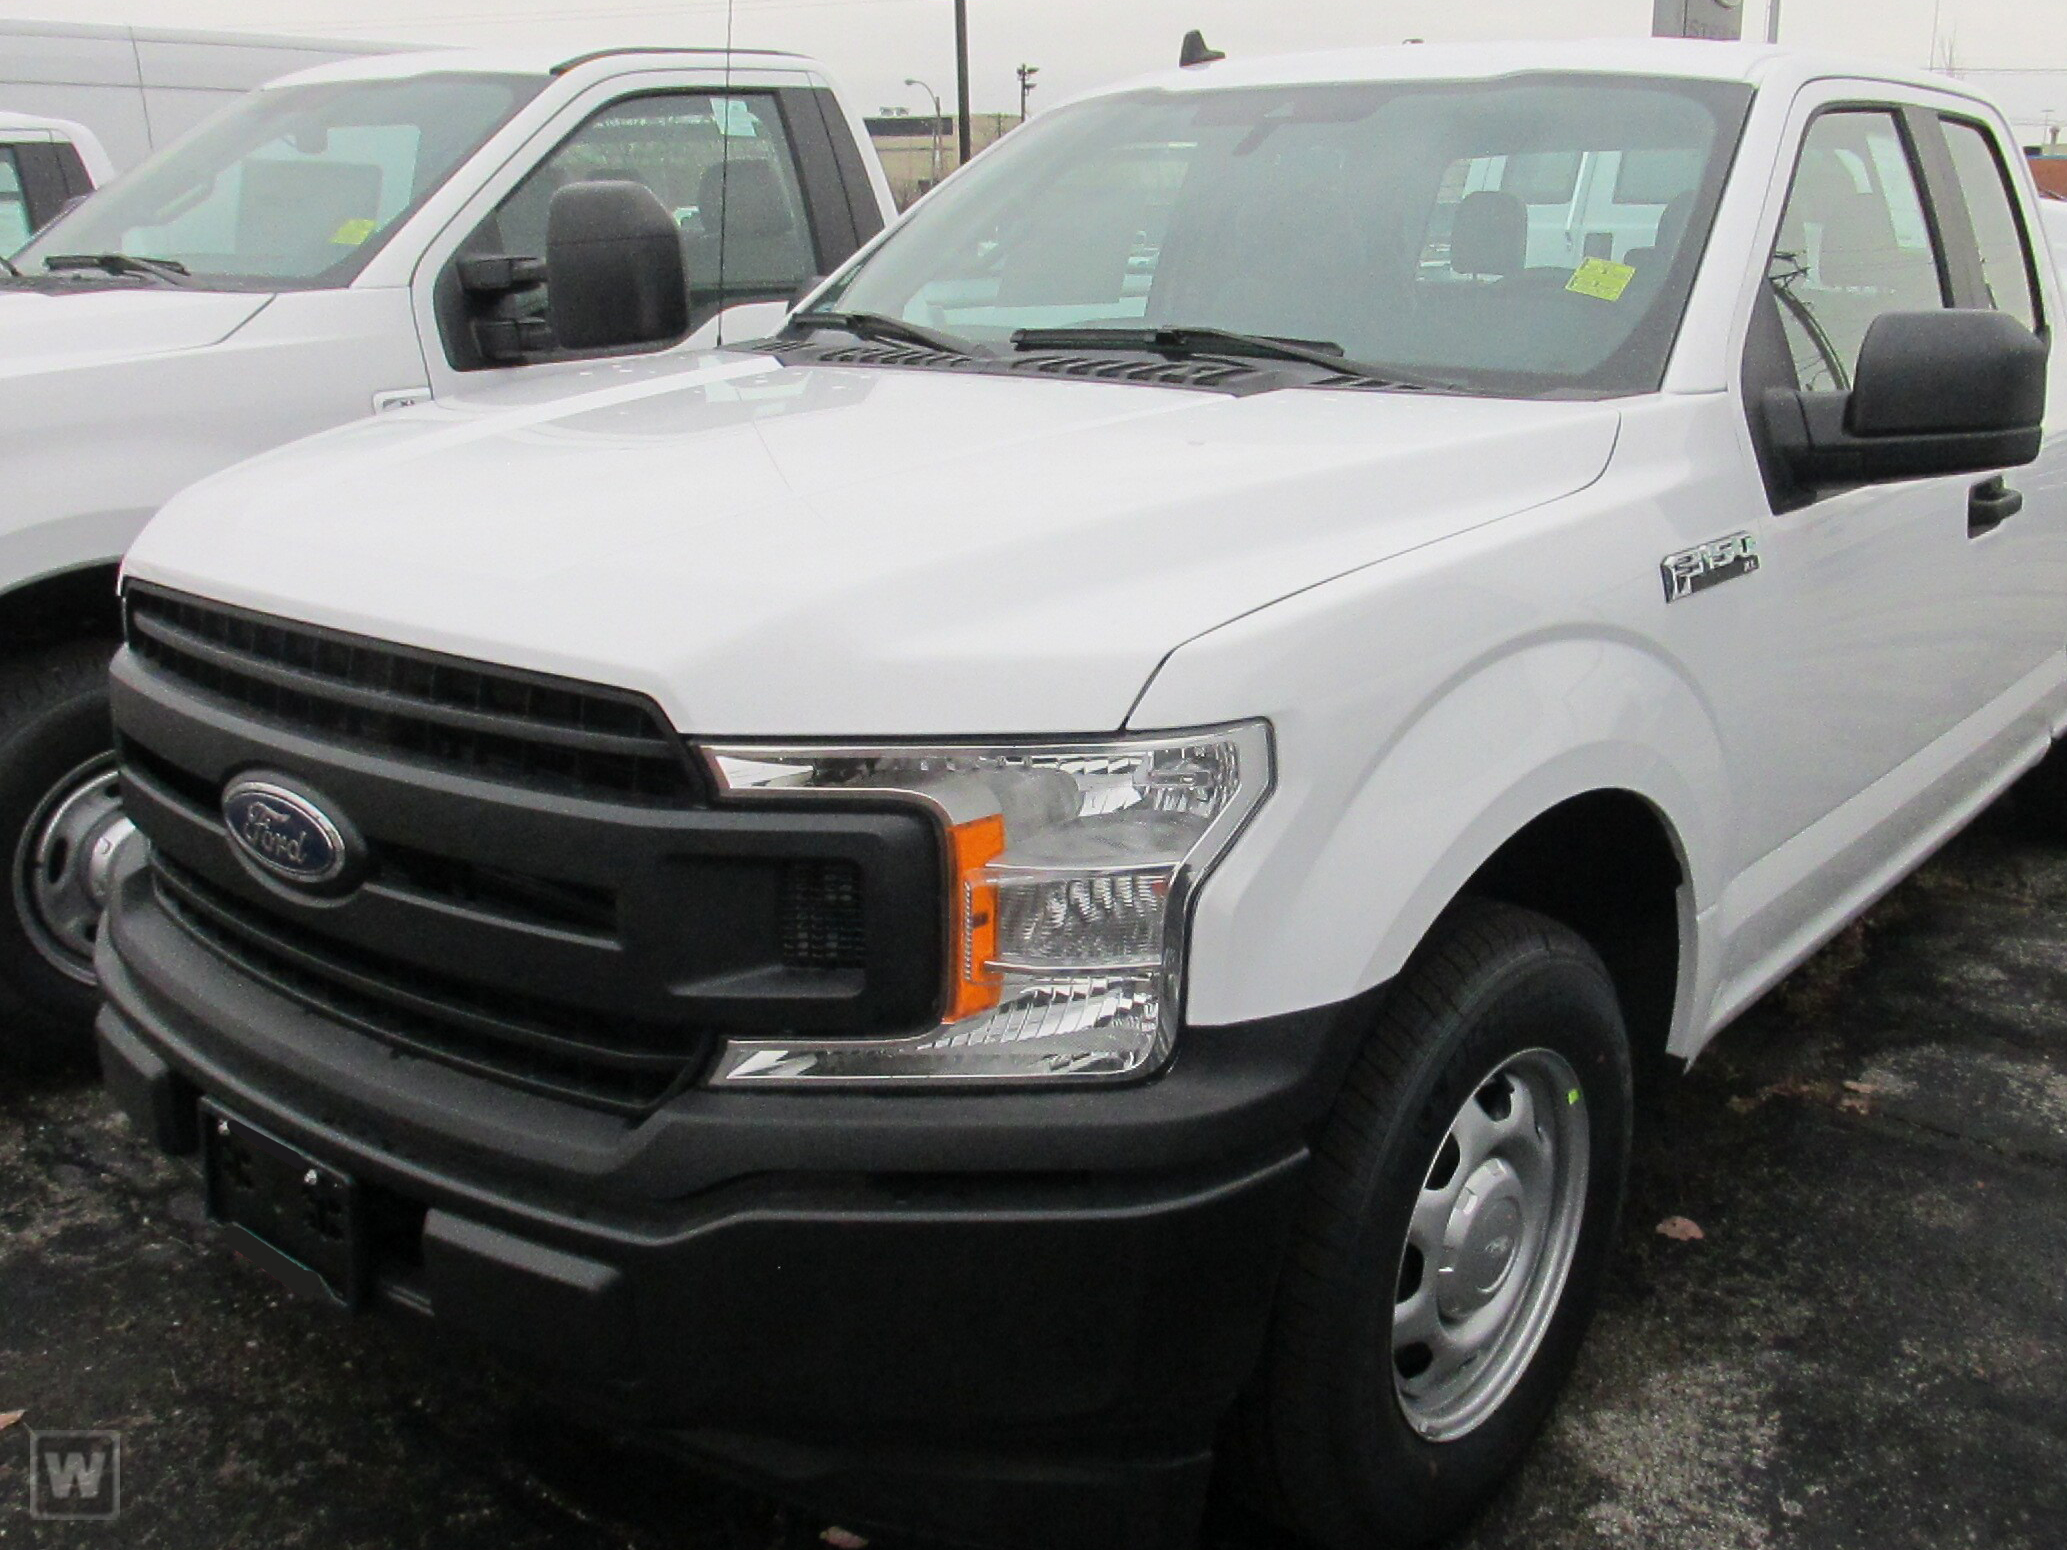 2020 Ford F-150 Super Cab 4x4, Pickup #BF56977 - photo 1